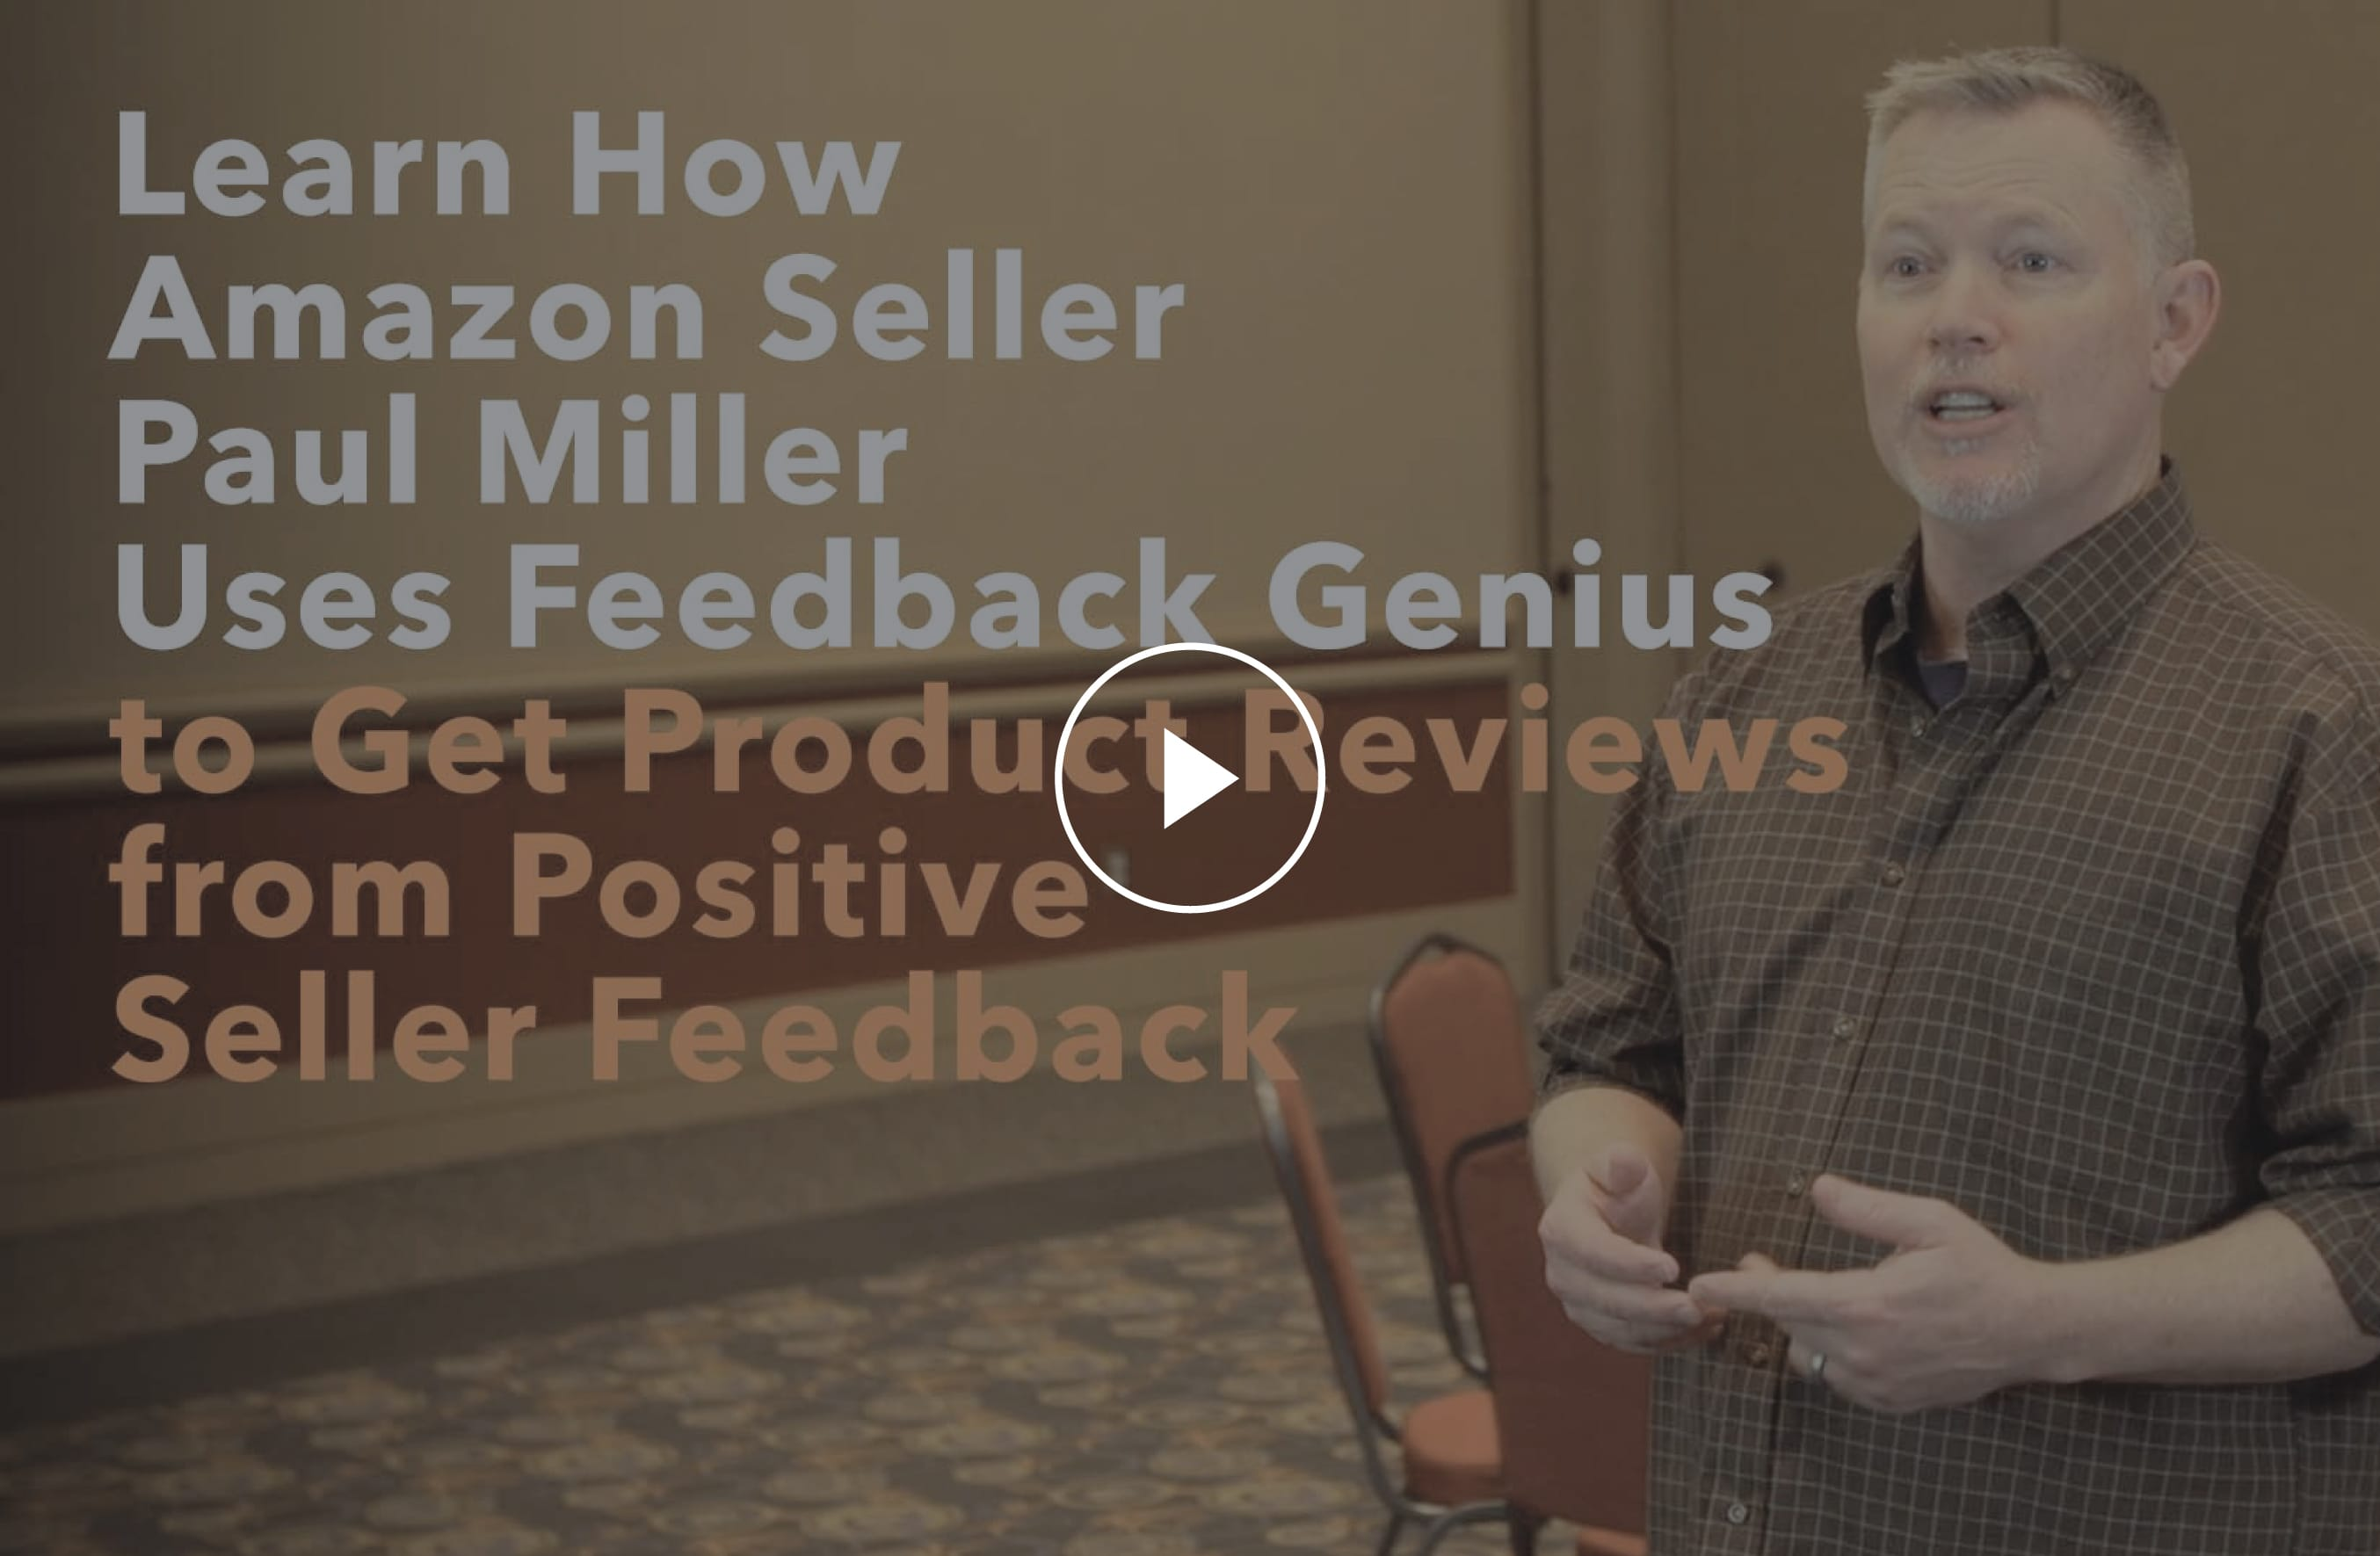 Amazon Seller Paul Miller Uses Feedback Genius To Get Product Reviews From Positive Seller Feedback